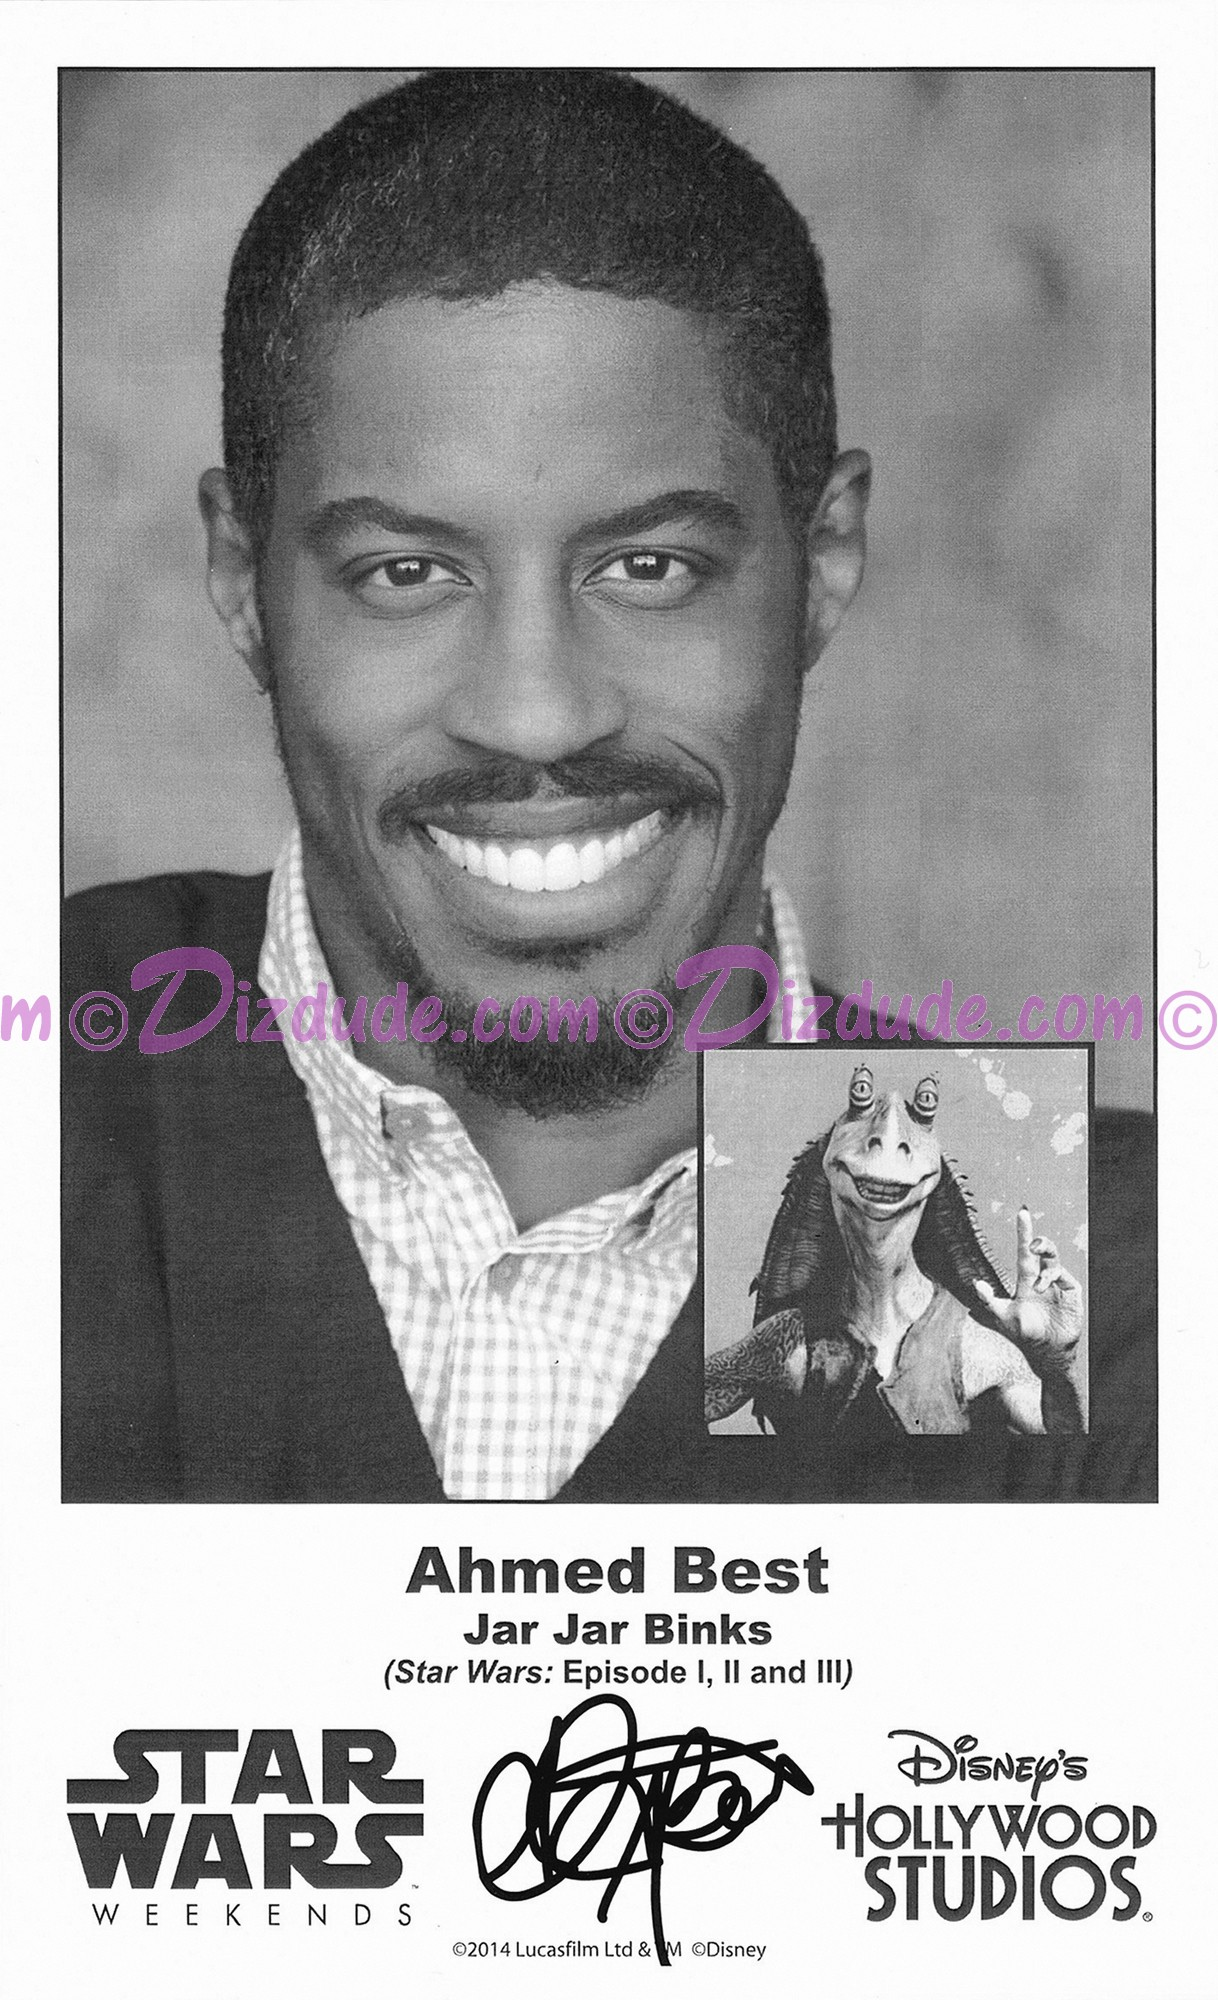 Ahmed Best who played Jar Jar Binks Presigned Official Star Wars Weekends 2014 Celebrity Collector Photo